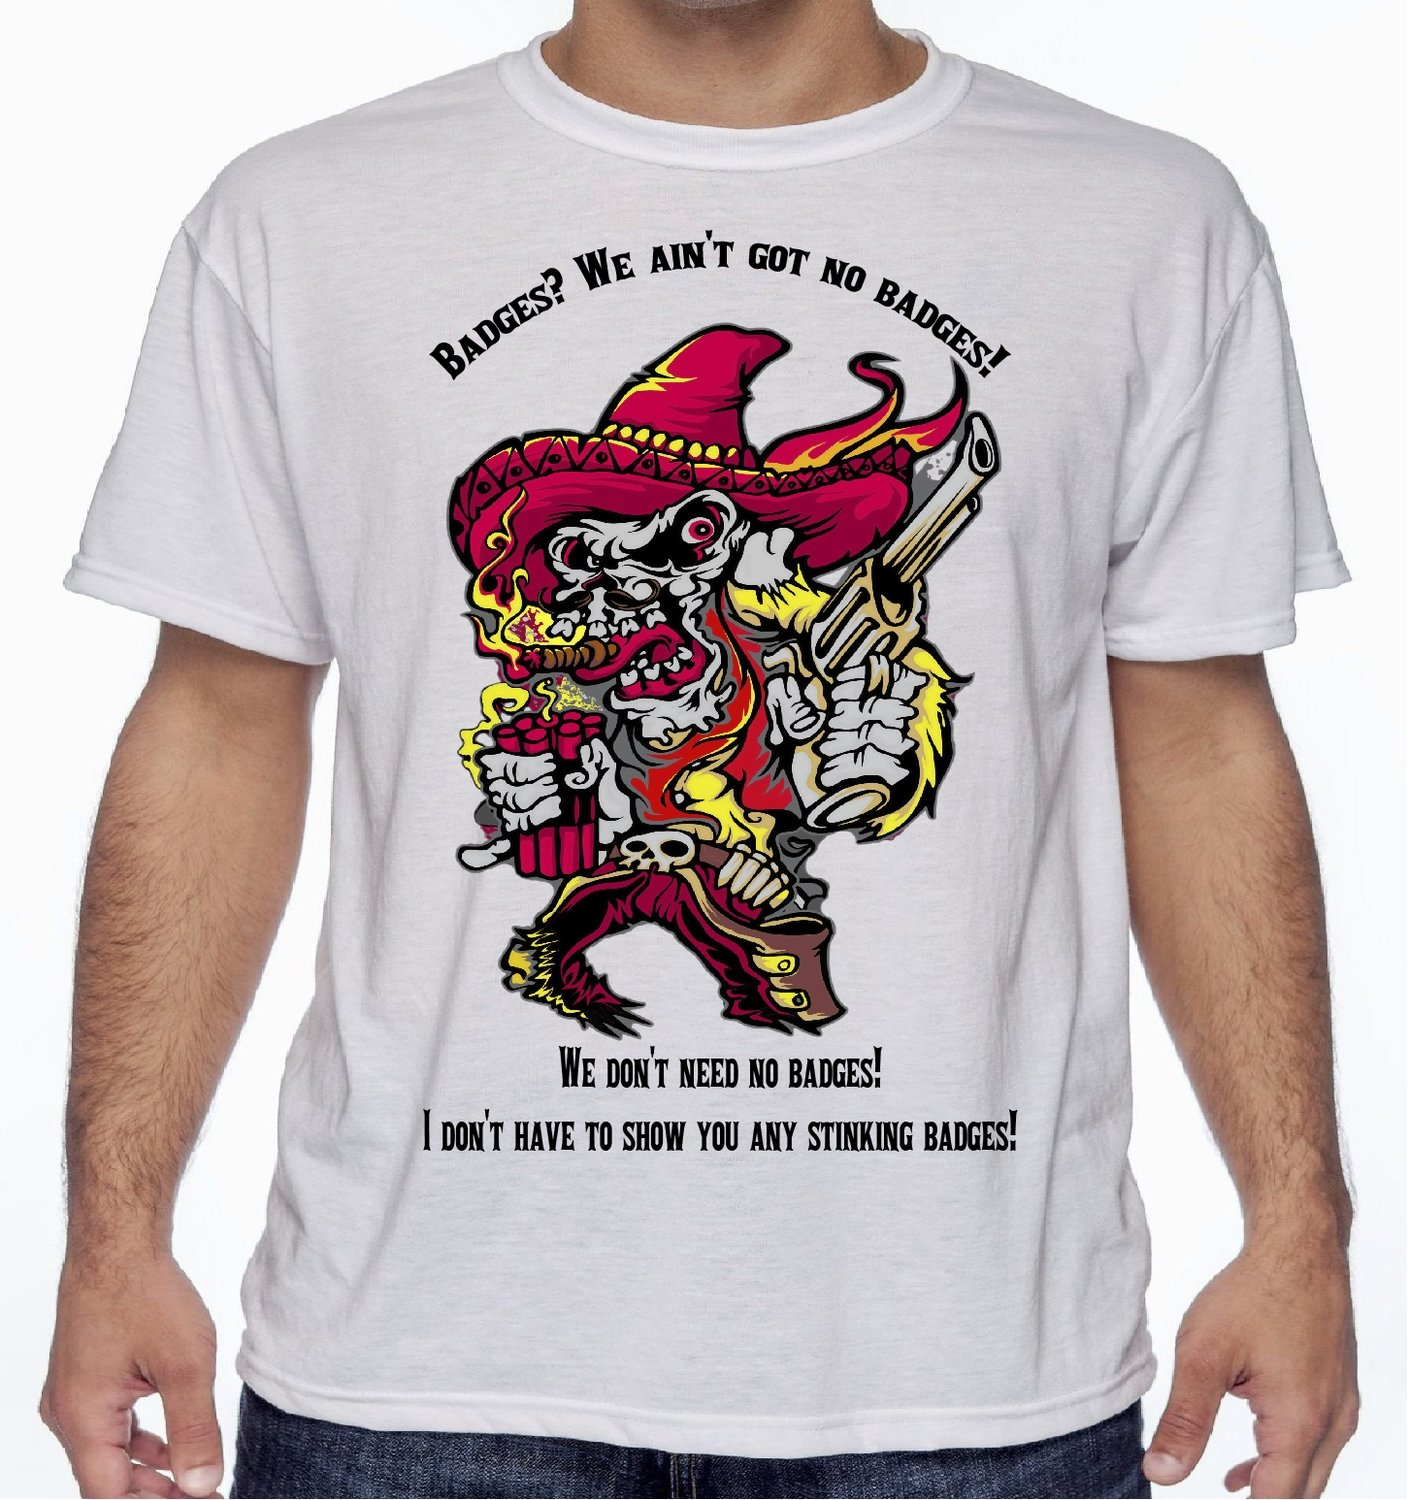 No Stinking Badges T-Shirt Ace Designs FREE SHIPPING